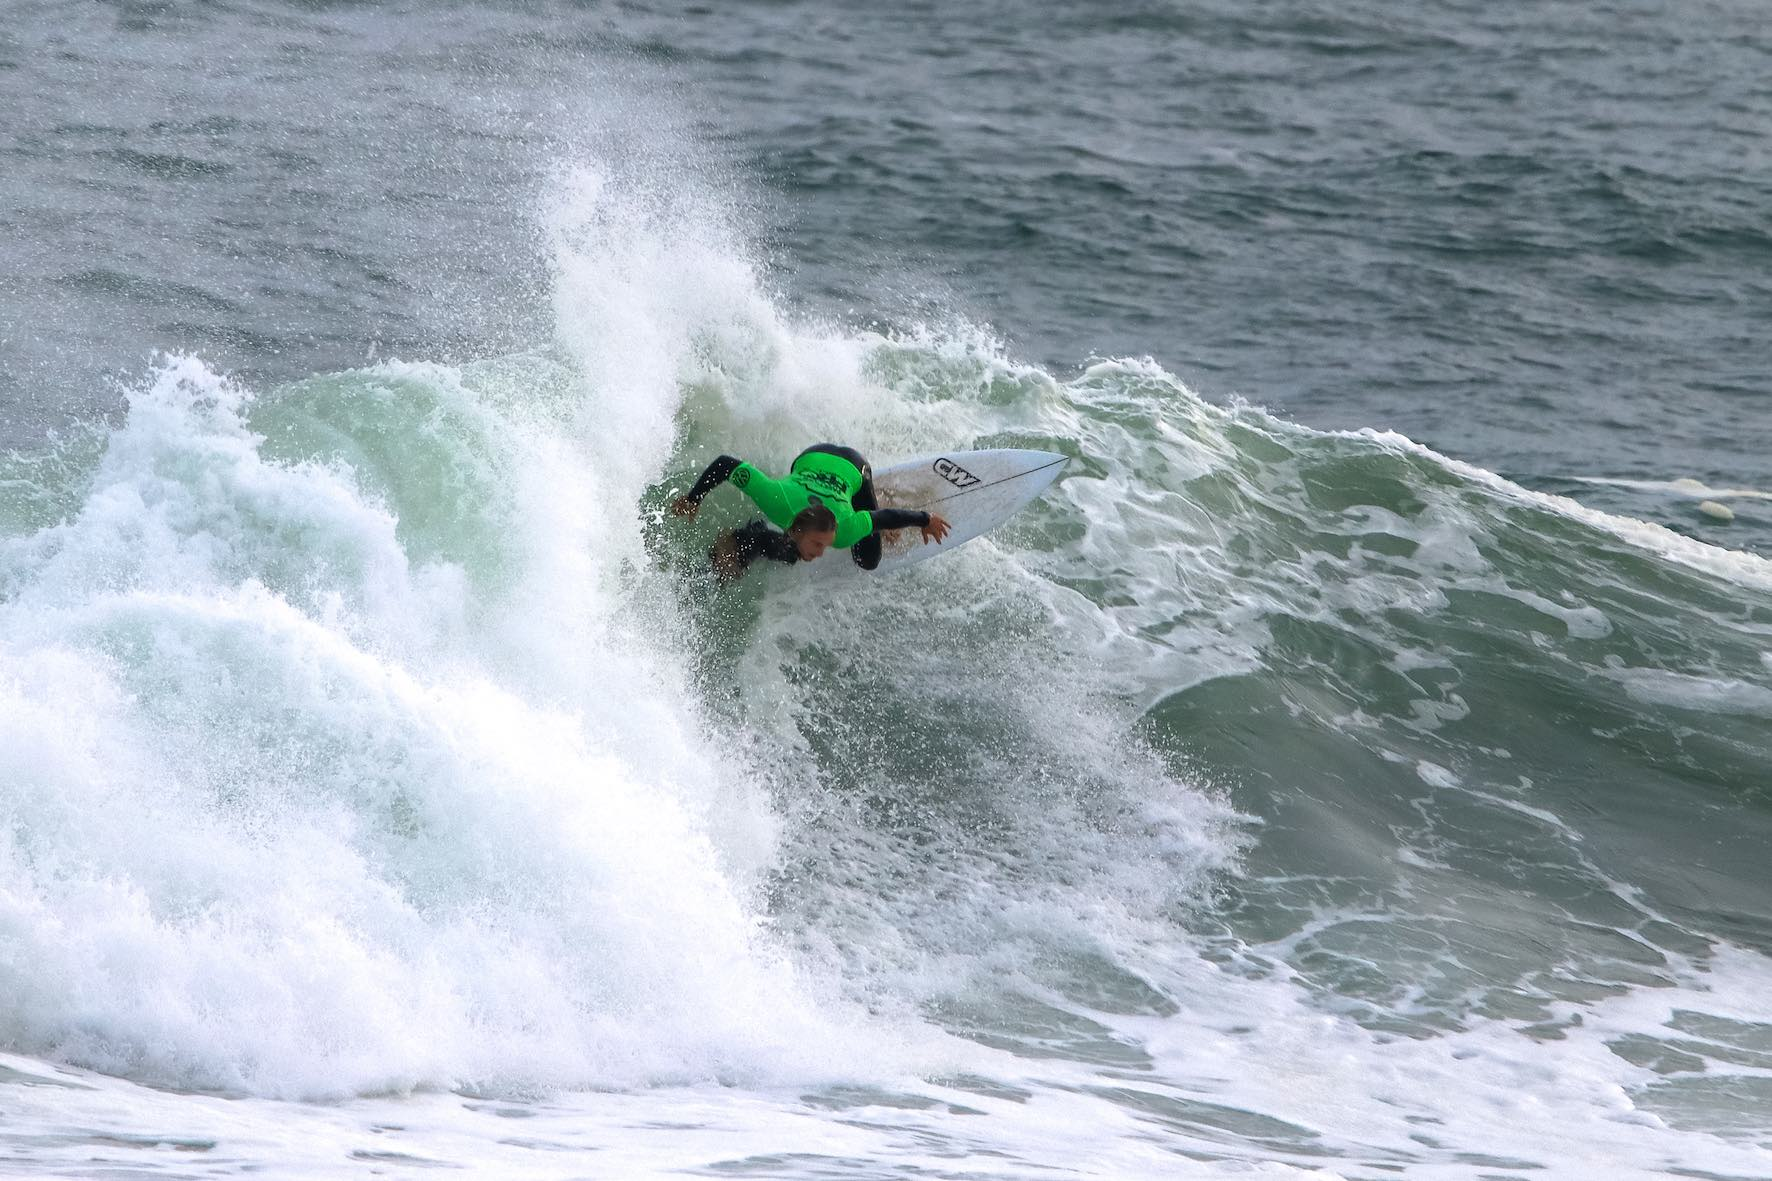 Jolan Bonelli surfing his way to victory at the Jordy Smith Cape Town Surf Pro